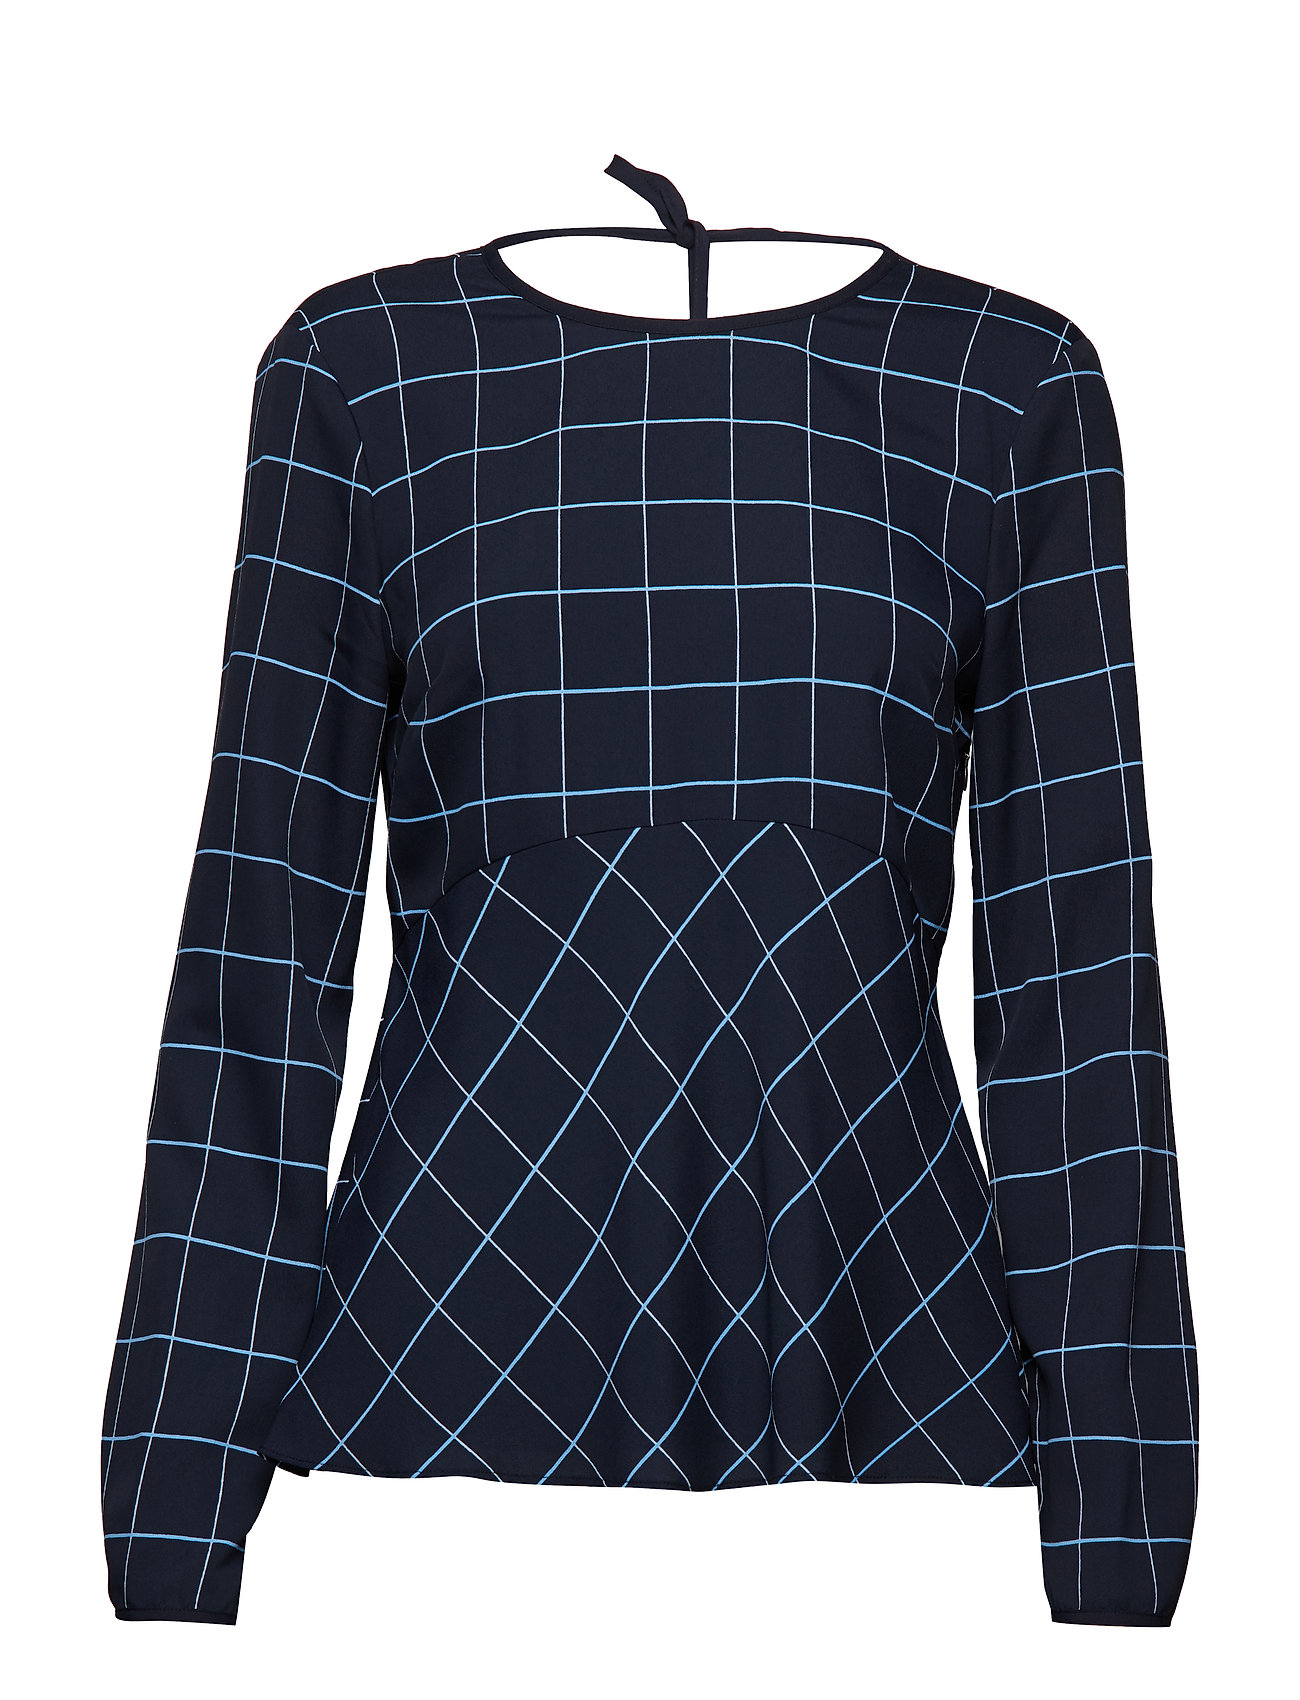 Tommy Hilfiger HARPER BLOUSE LS, 46 - WINDOWPANE / MIDNIGHT